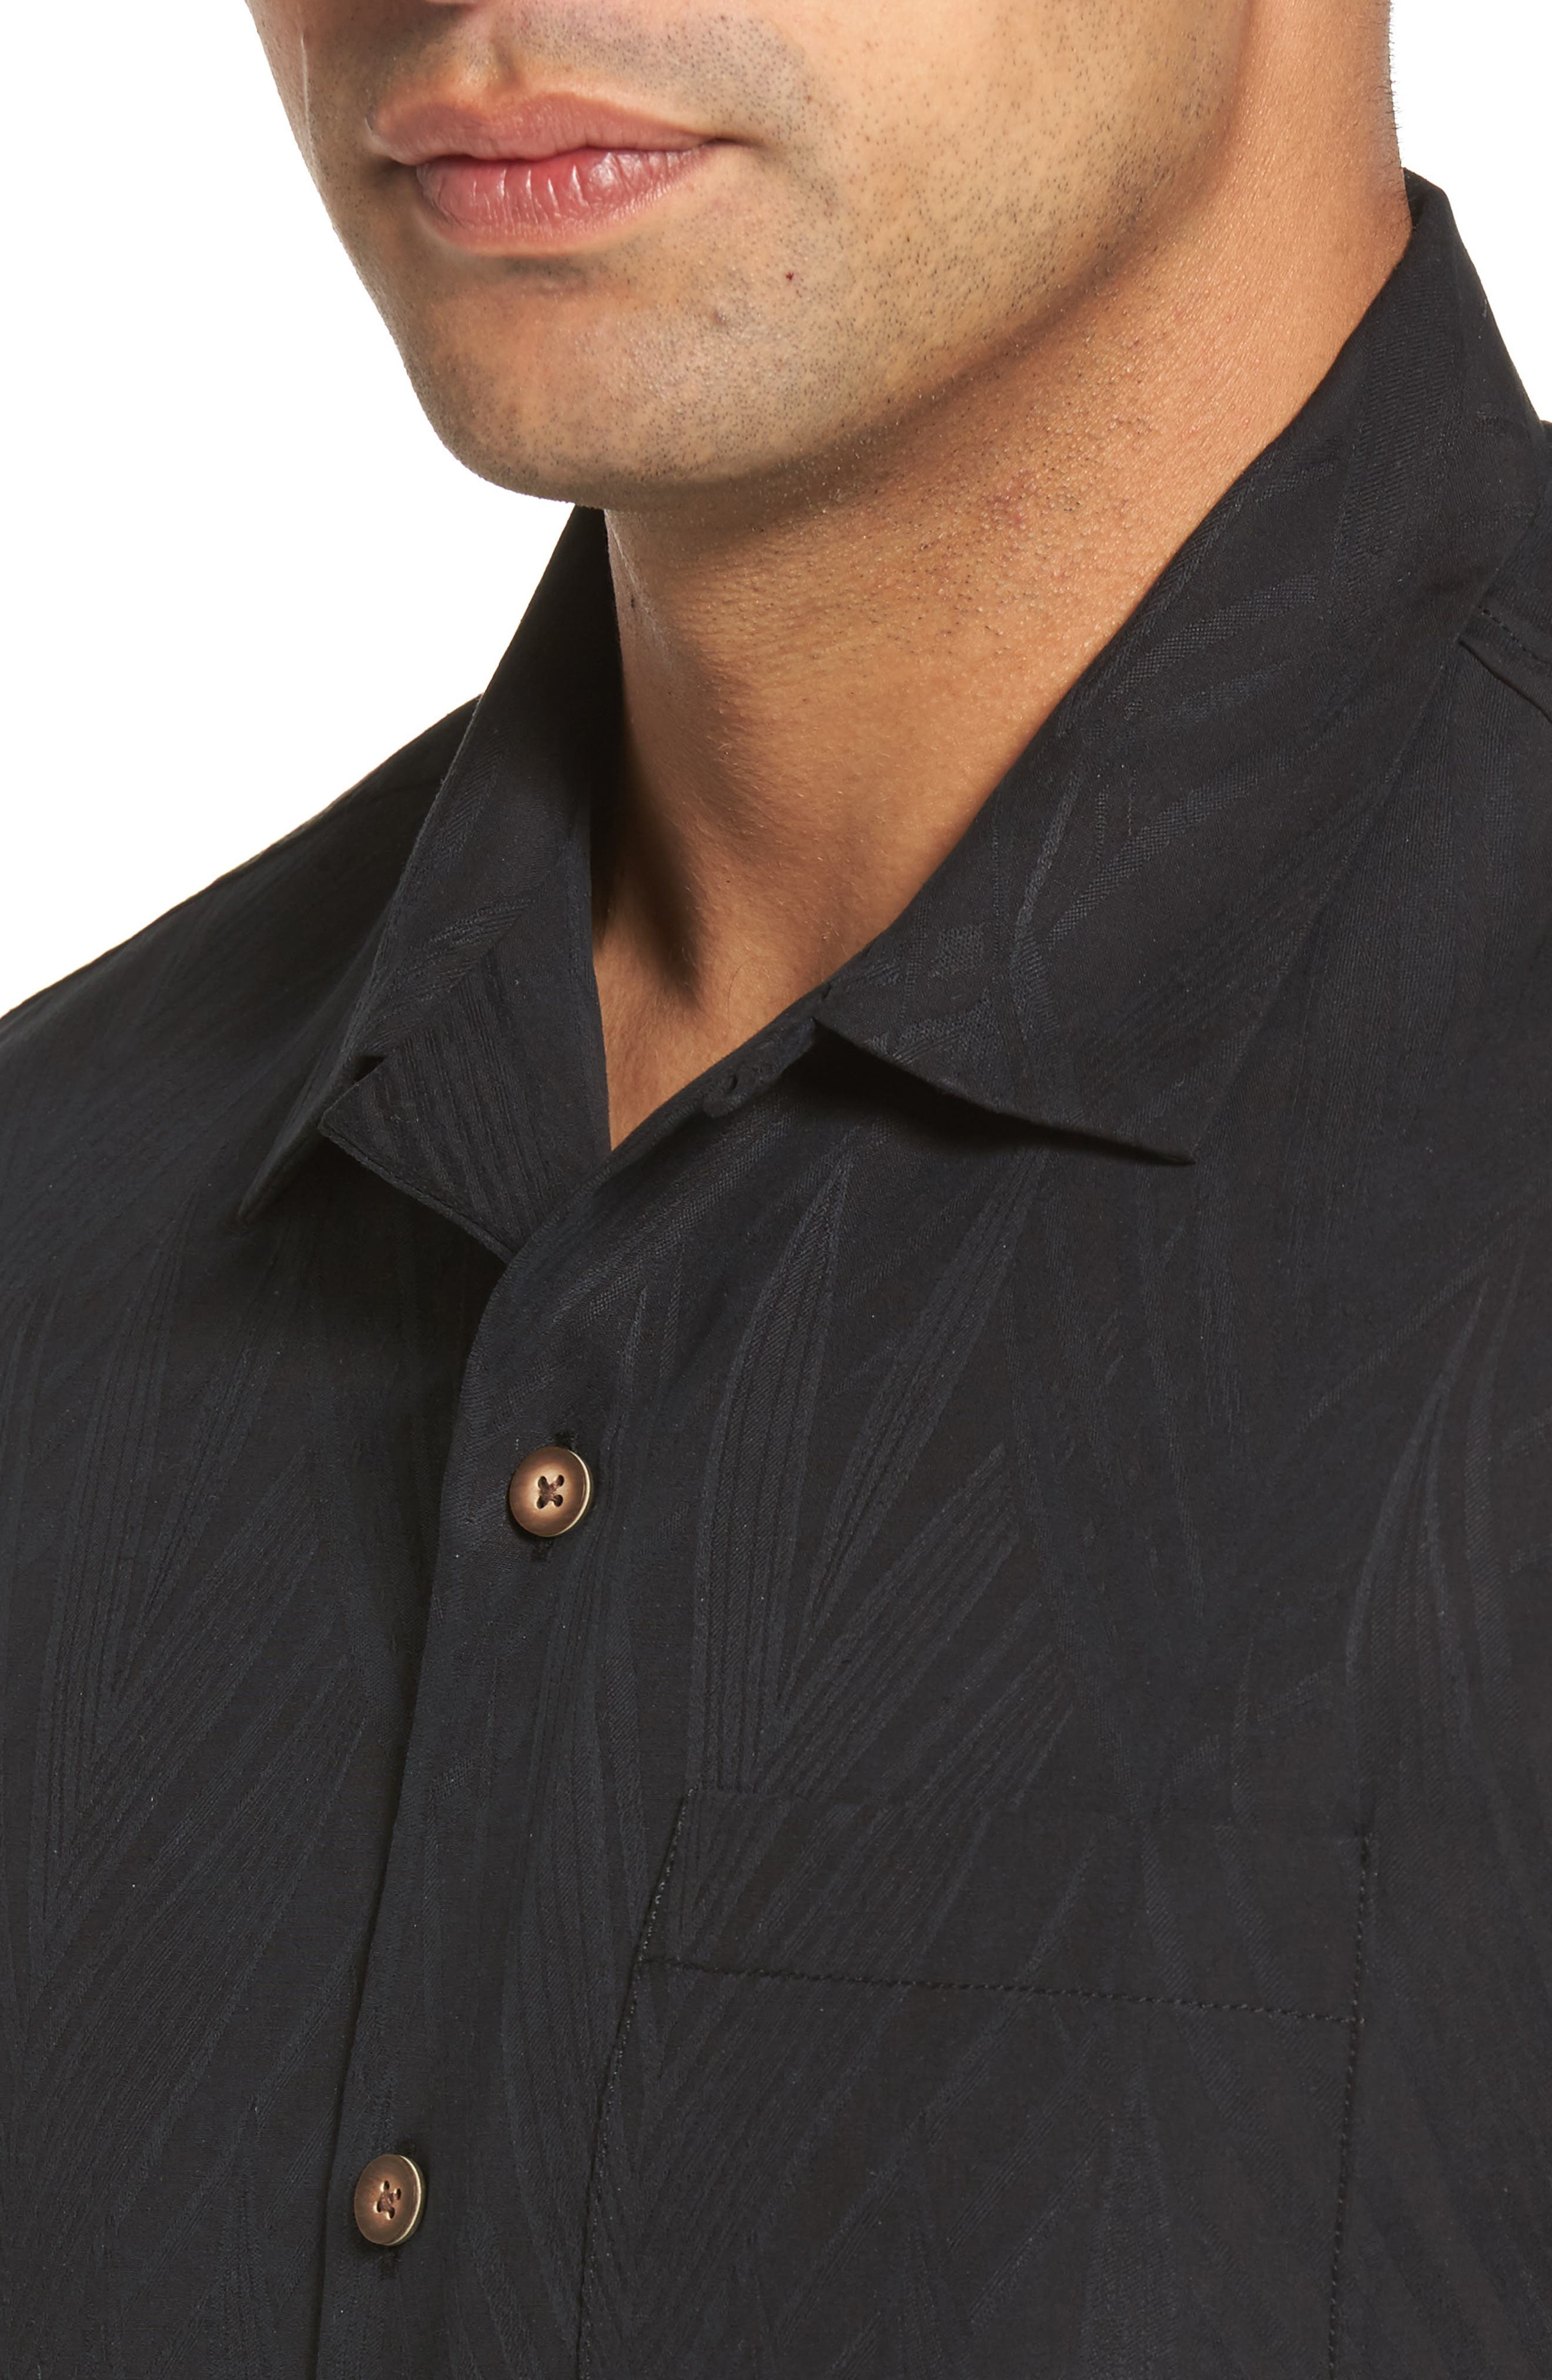 Local Watering Hole Embroidered Silk Camp Shirt,                             Alternate thumbnail 4, color,                             Black